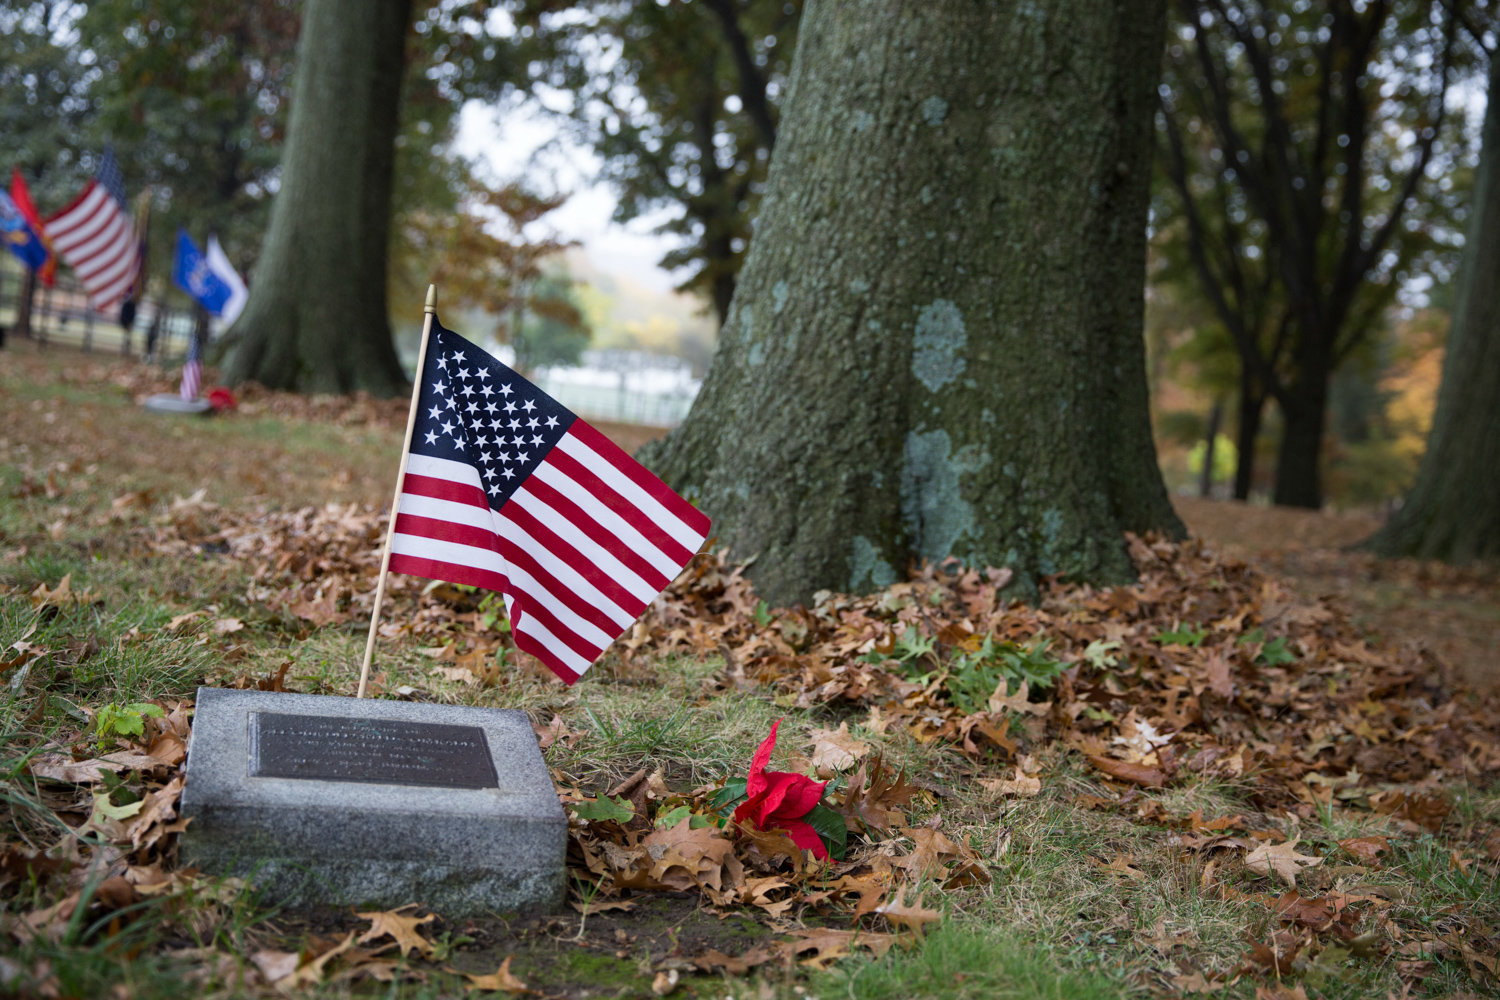 A World War II memorial in Memorial Grove, decorated by Herb Barret, honors the memory of fallen soldiers. Donald Tannen, who died in 2014, helped Barret in his effort to restore the grove in 2007.